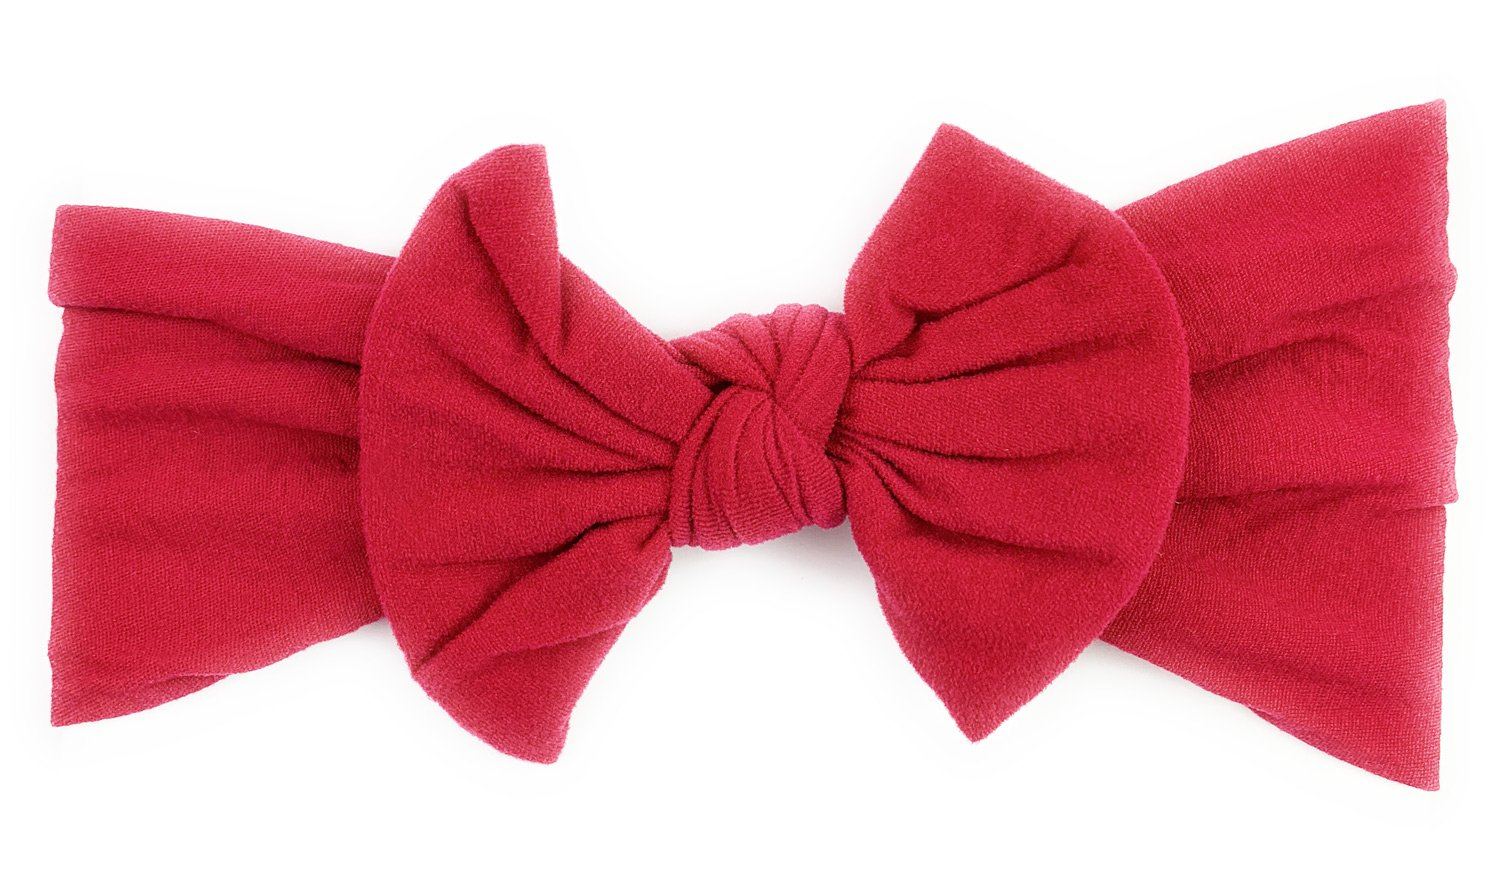 Burgundy Baby Bow Cotton Bow Red Baby Bow Baby Bow on Nylon Headband Deep Red Baby Bow Girls Bow Clip Nylon Baby Bow Newborn Baby Bow